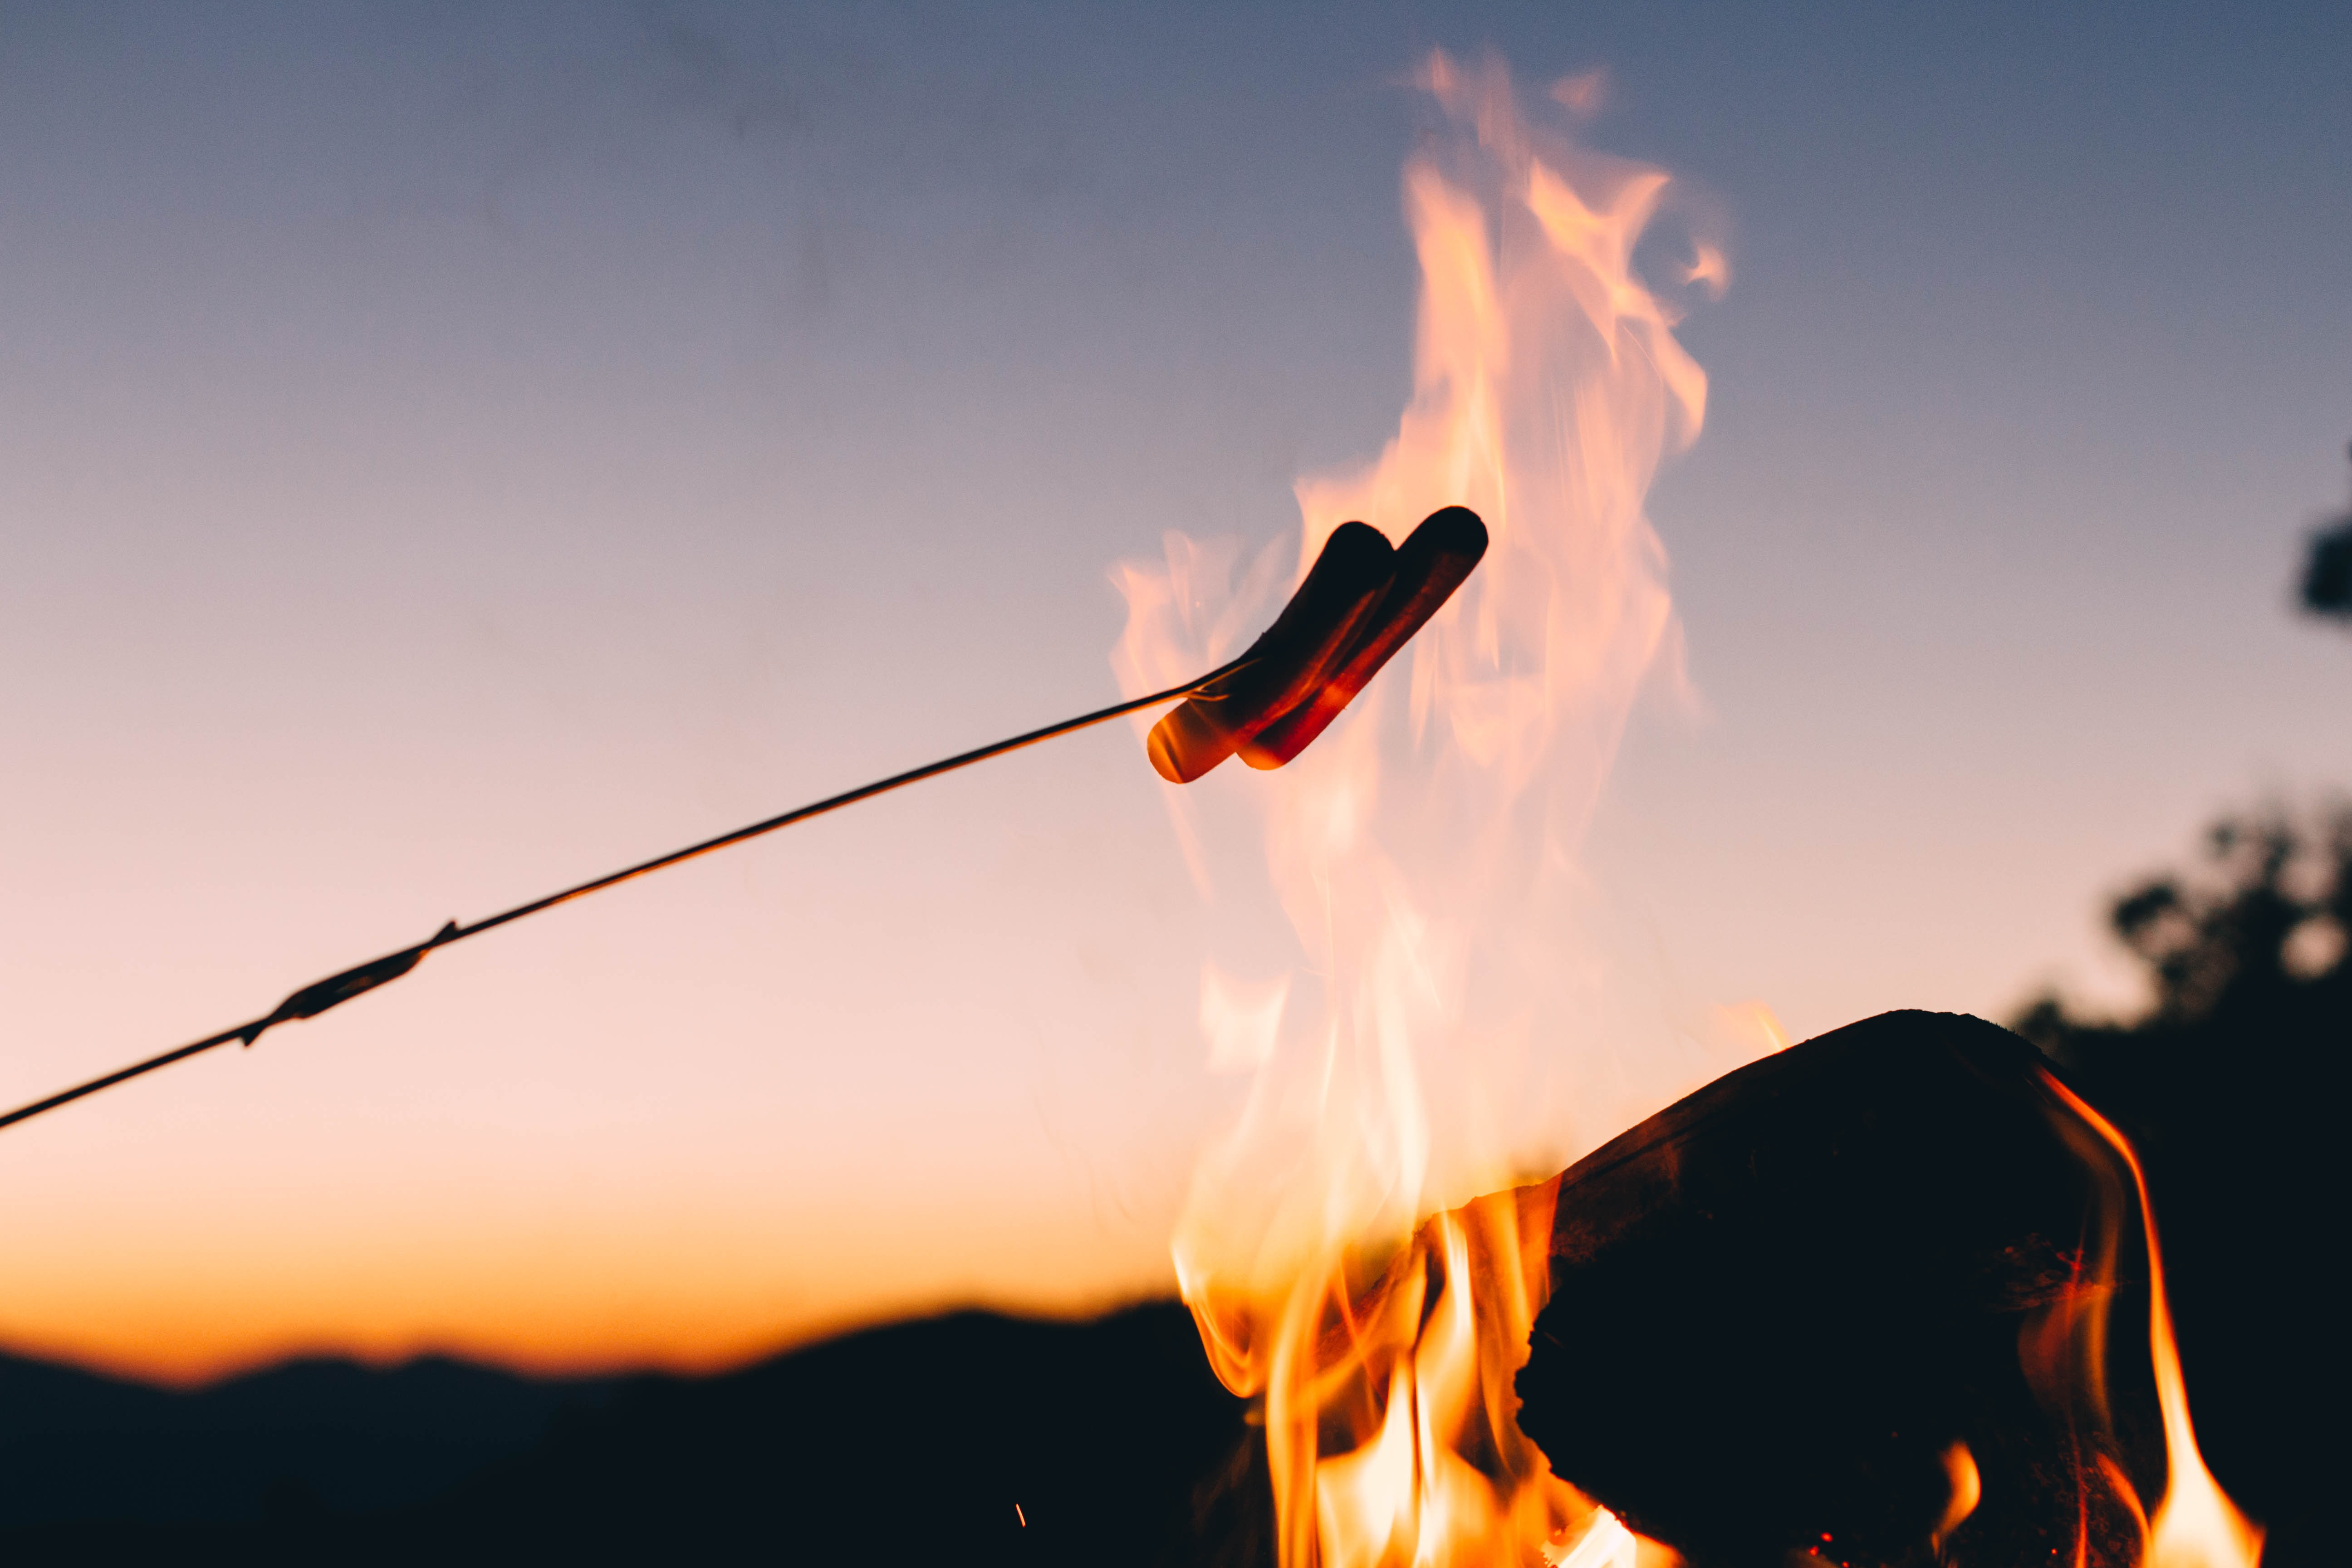 Roasting hotdogs over an open campfire at night